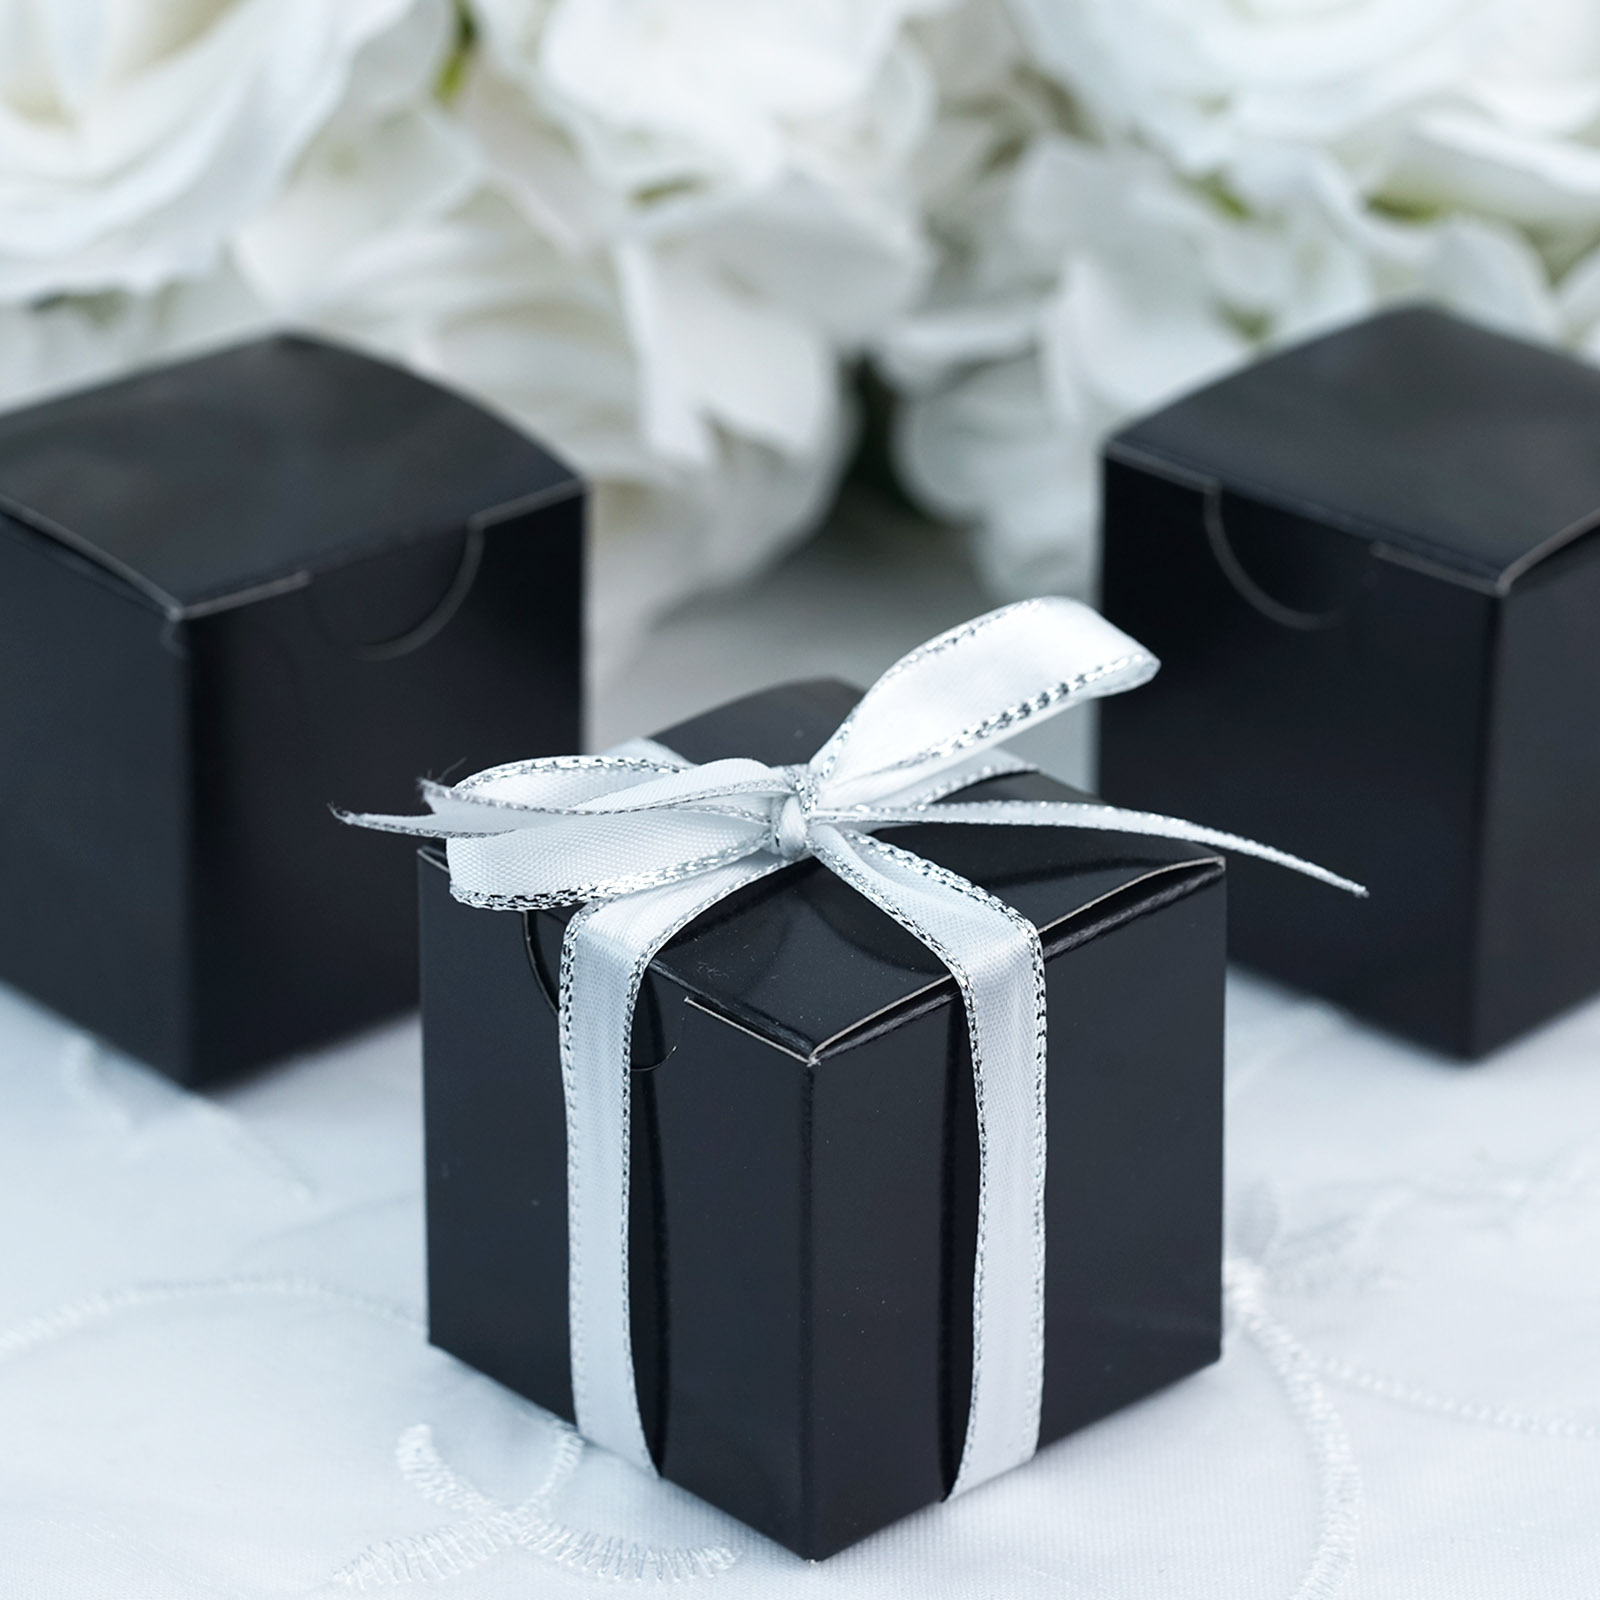 200 2x2x2 Wedding Favors Boxes Gift Packages Party Supplies